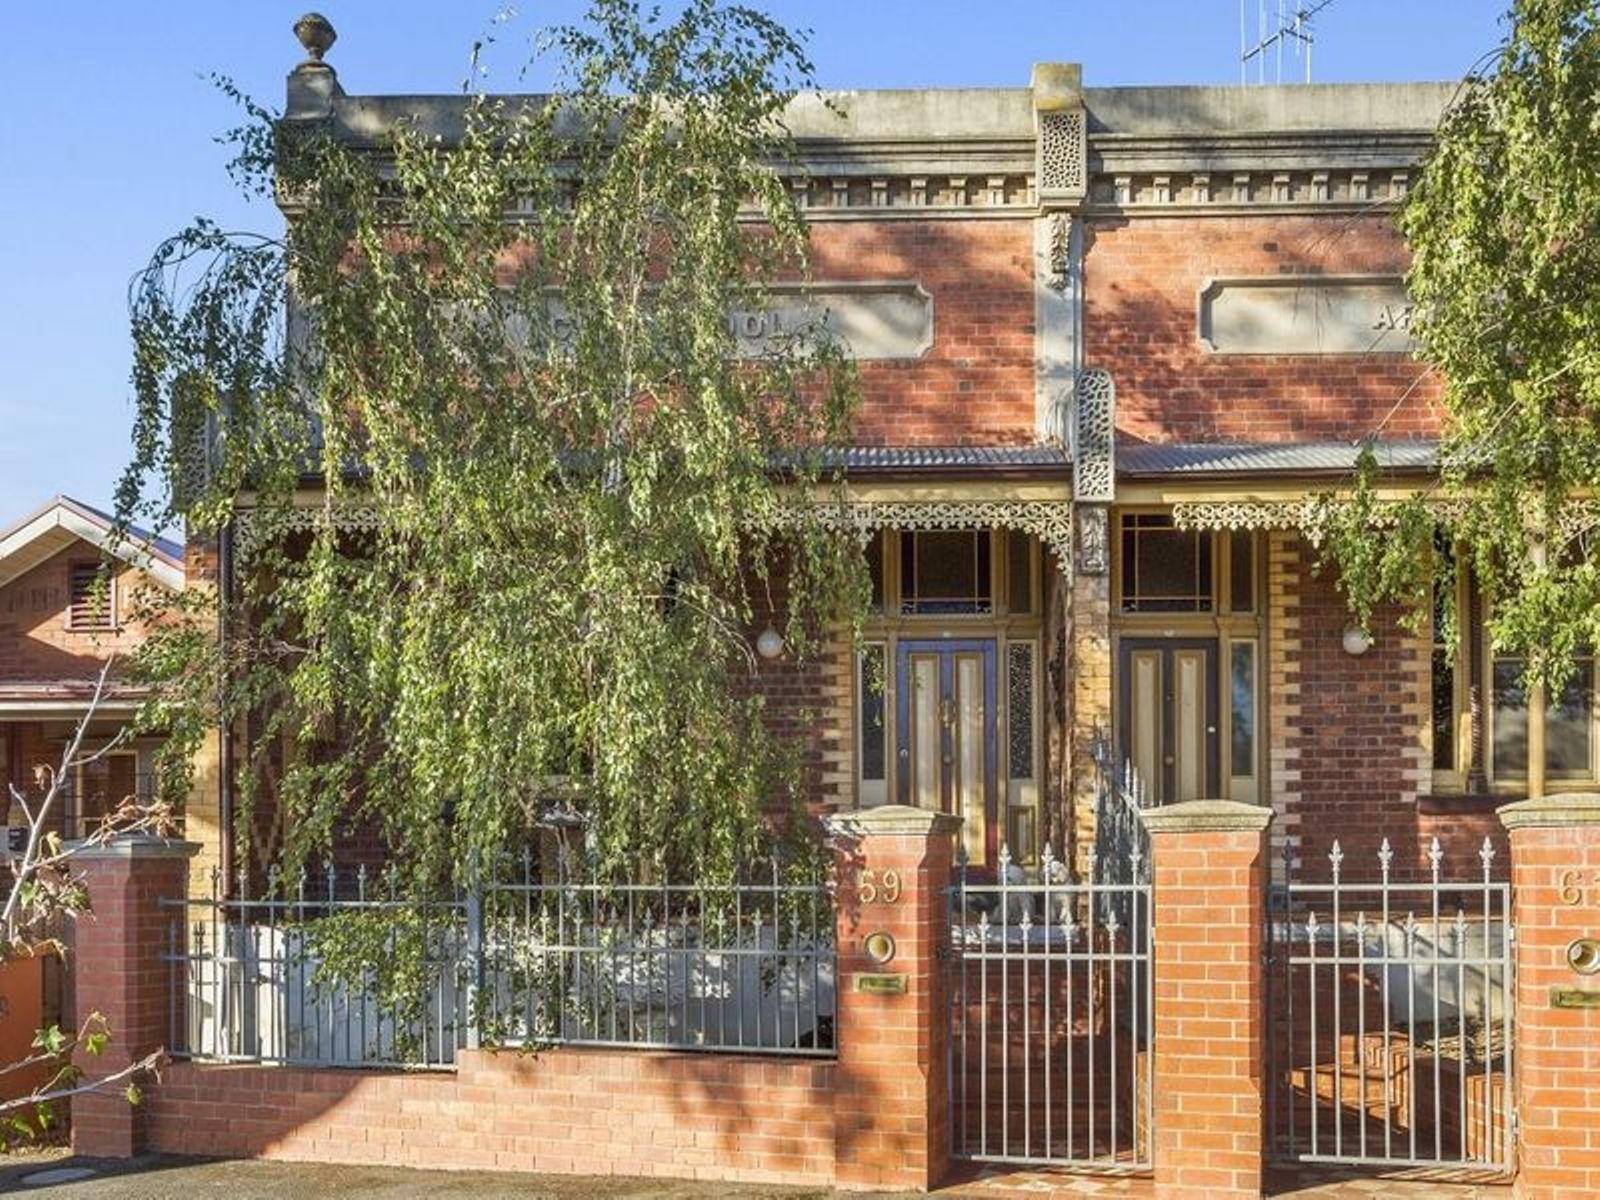 59 Mundy Street, Bendigo, VIC 3550